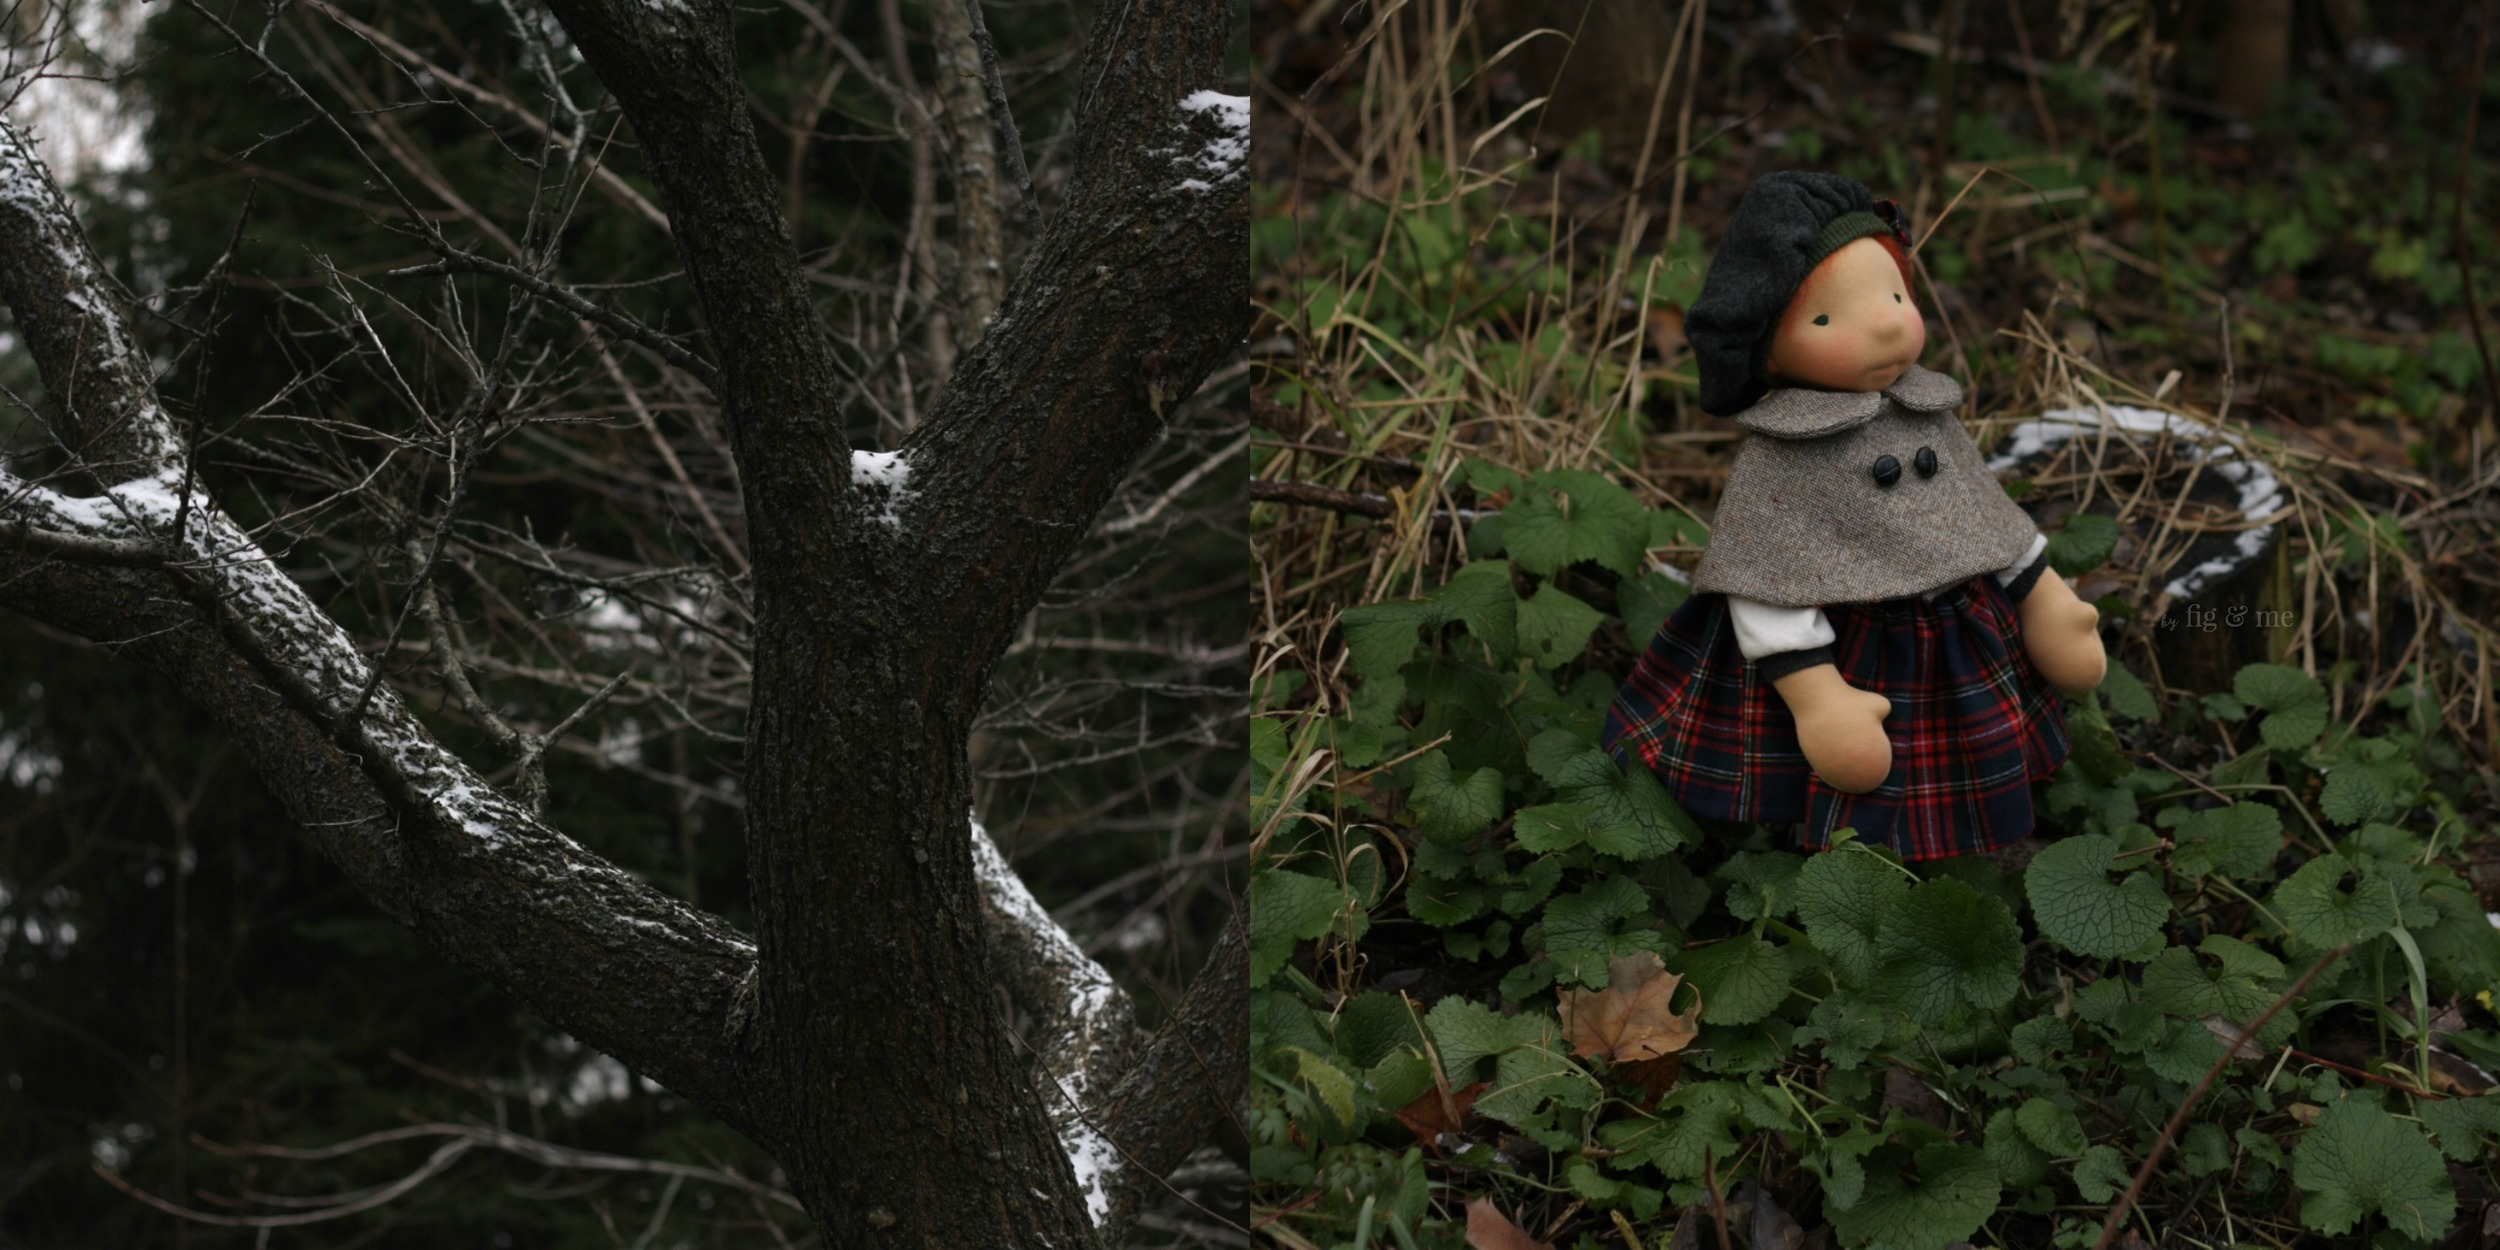 Kilda, a natural fiber art doll made by Fig and Me.